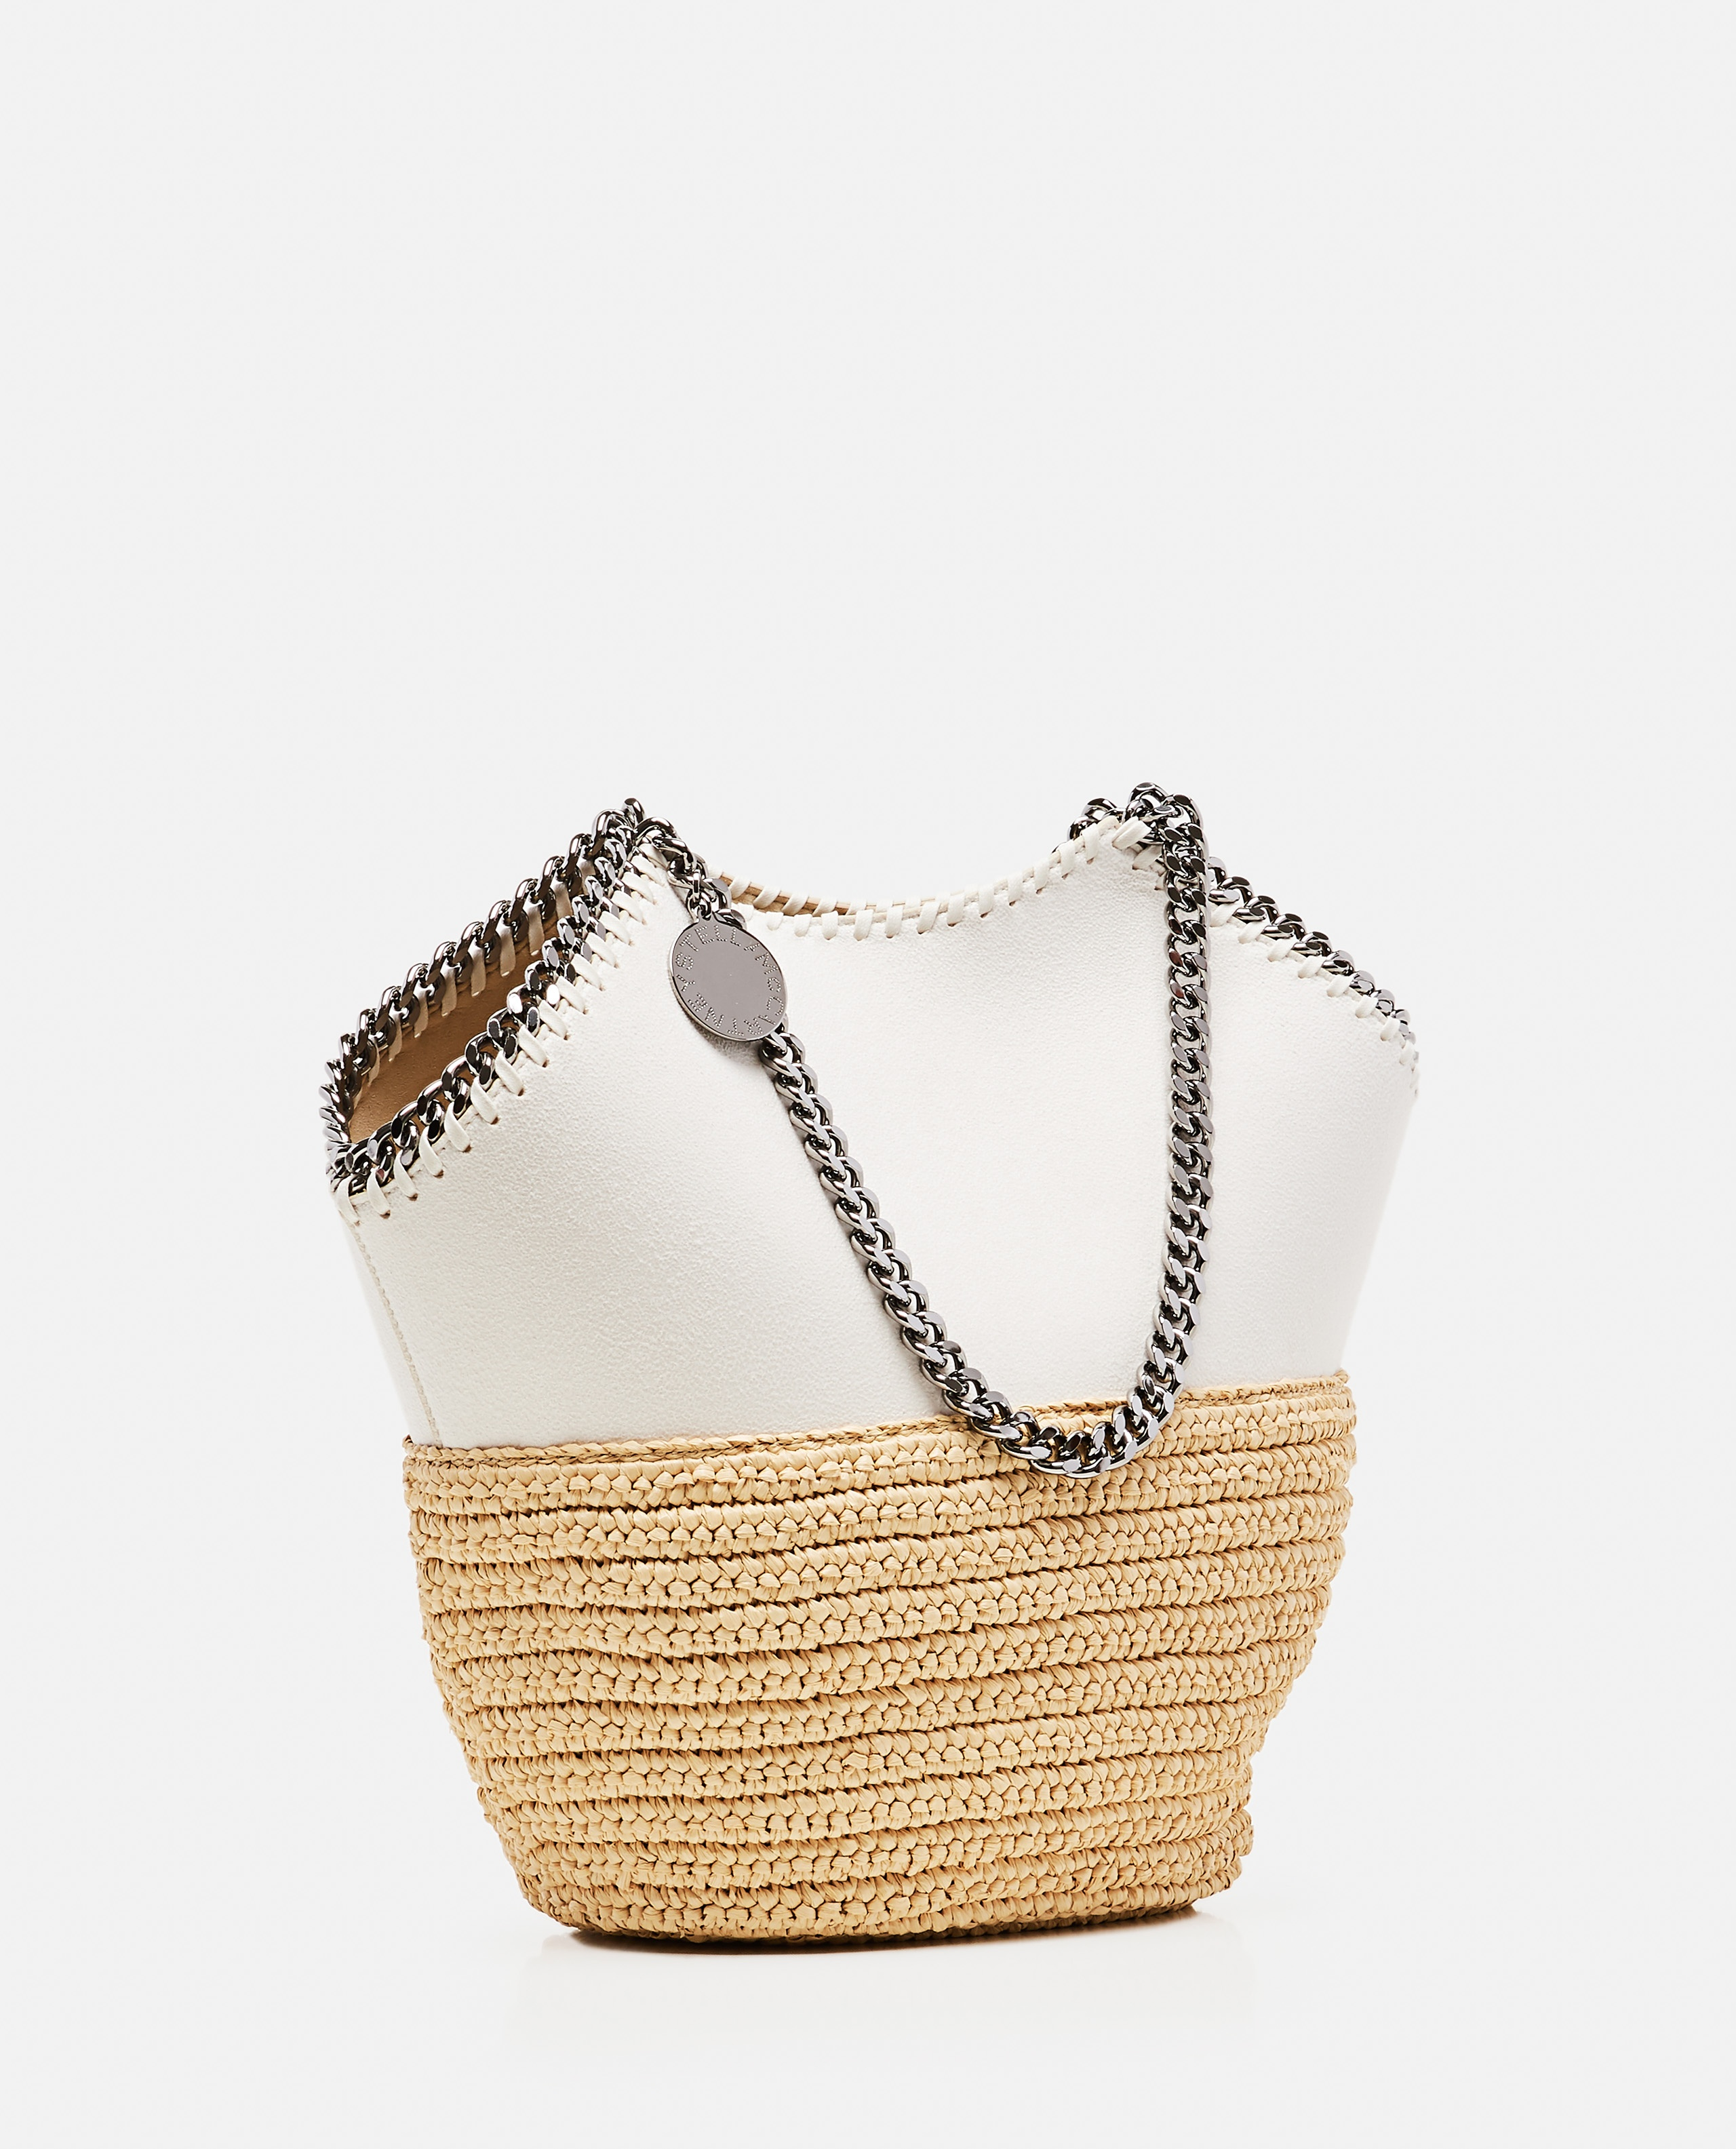 Falabella Tote Media in Rafia Donna Stella McCartney 000308090045179 2